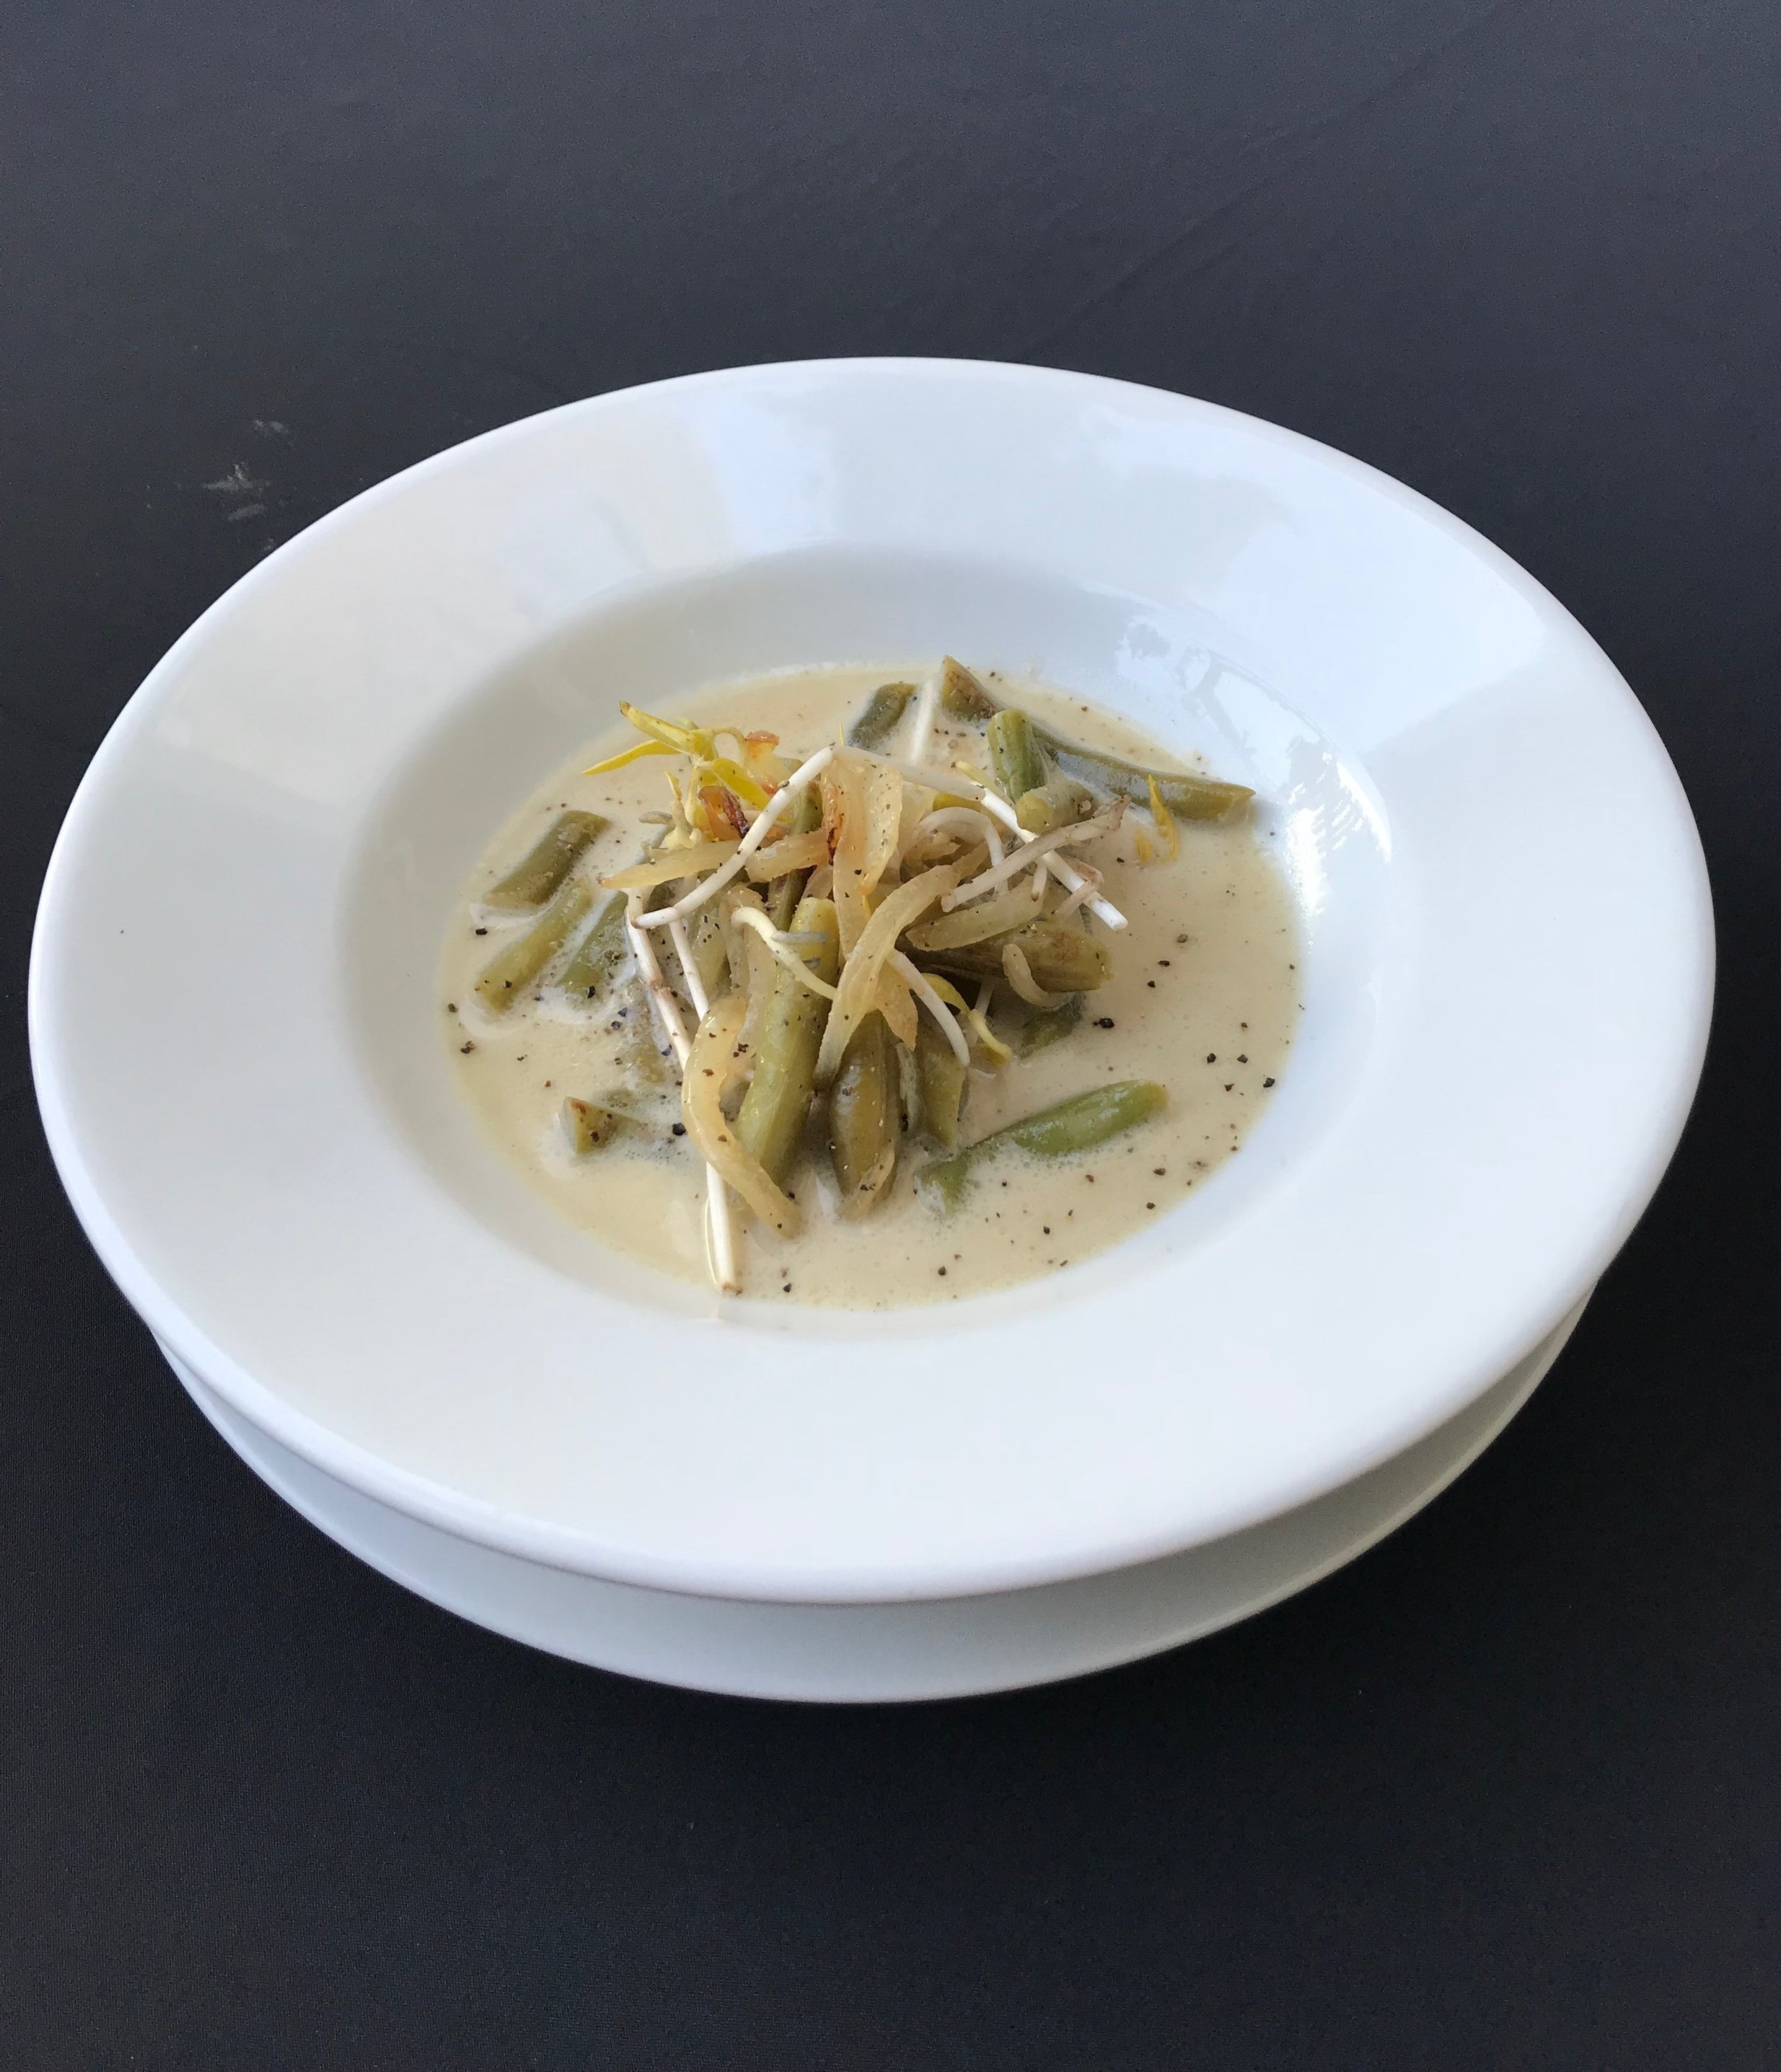 - Almond, Green Bean & Coconut Soup Seasoned almonds, green beans, and coriander puree, infused in a creamy coconut milk, served with bean sprouts, and fried shallots